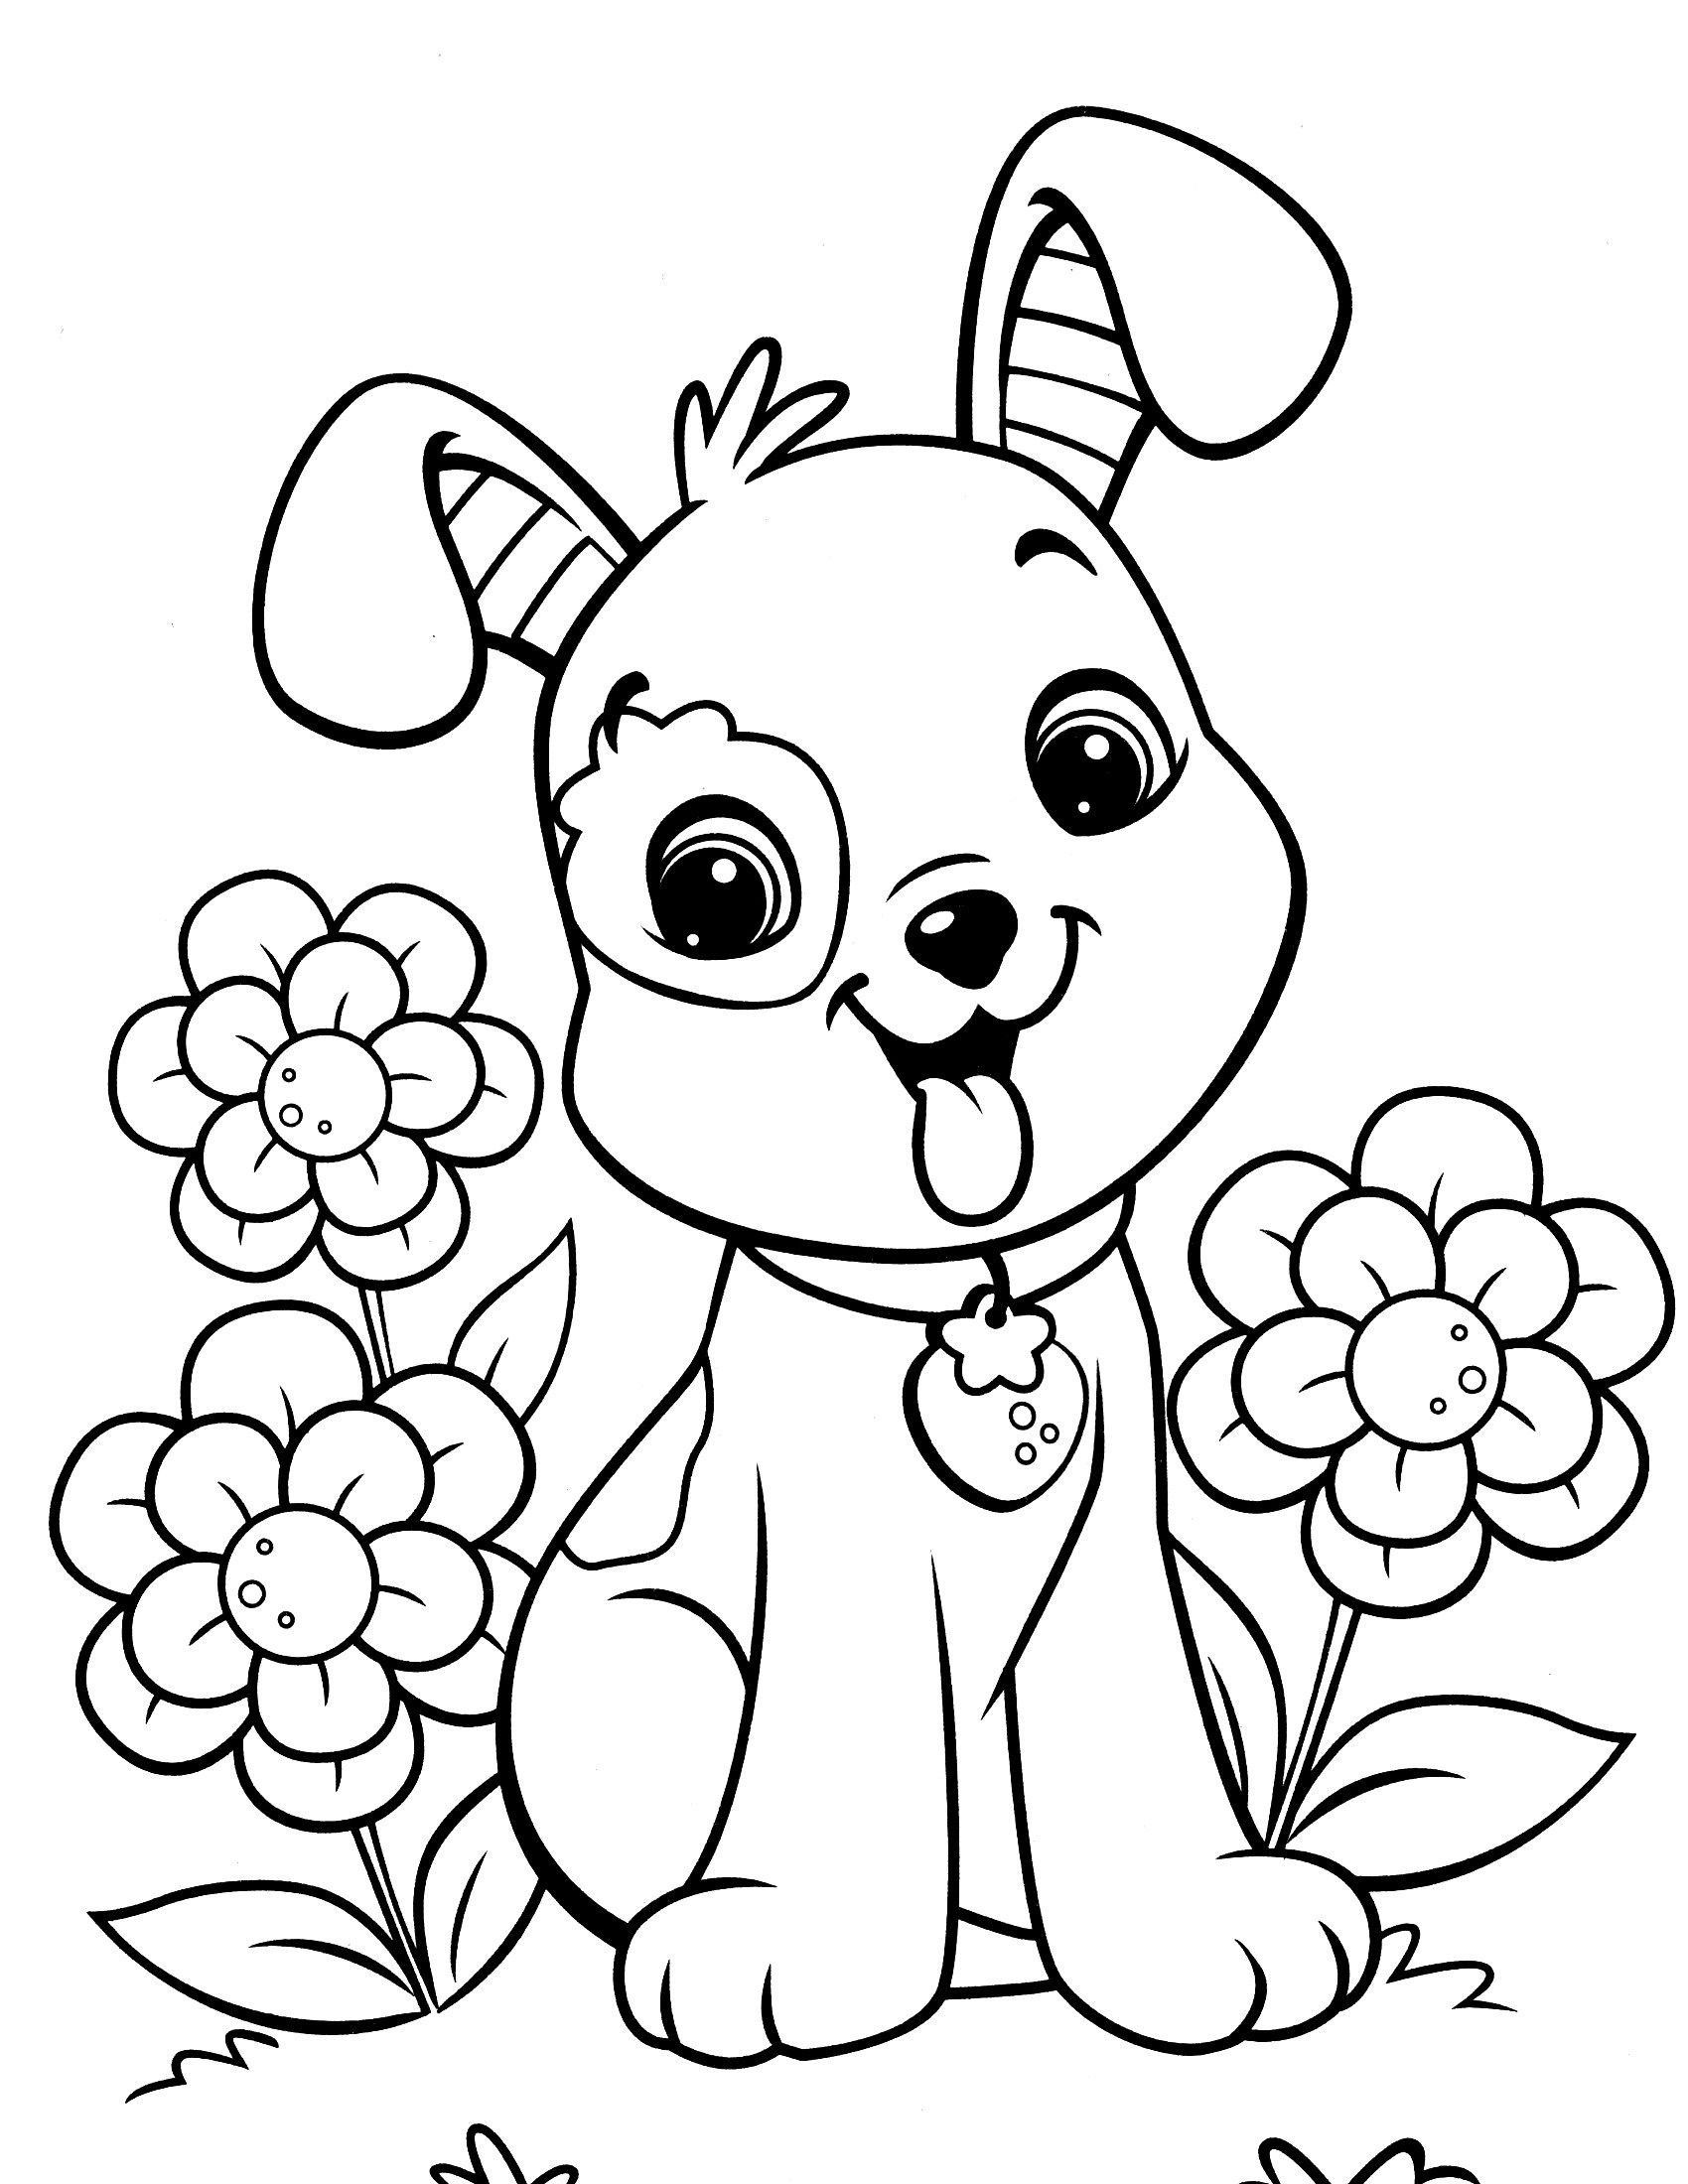 Golden Retriever Coloring Page Golden Retriever Coloring Pages